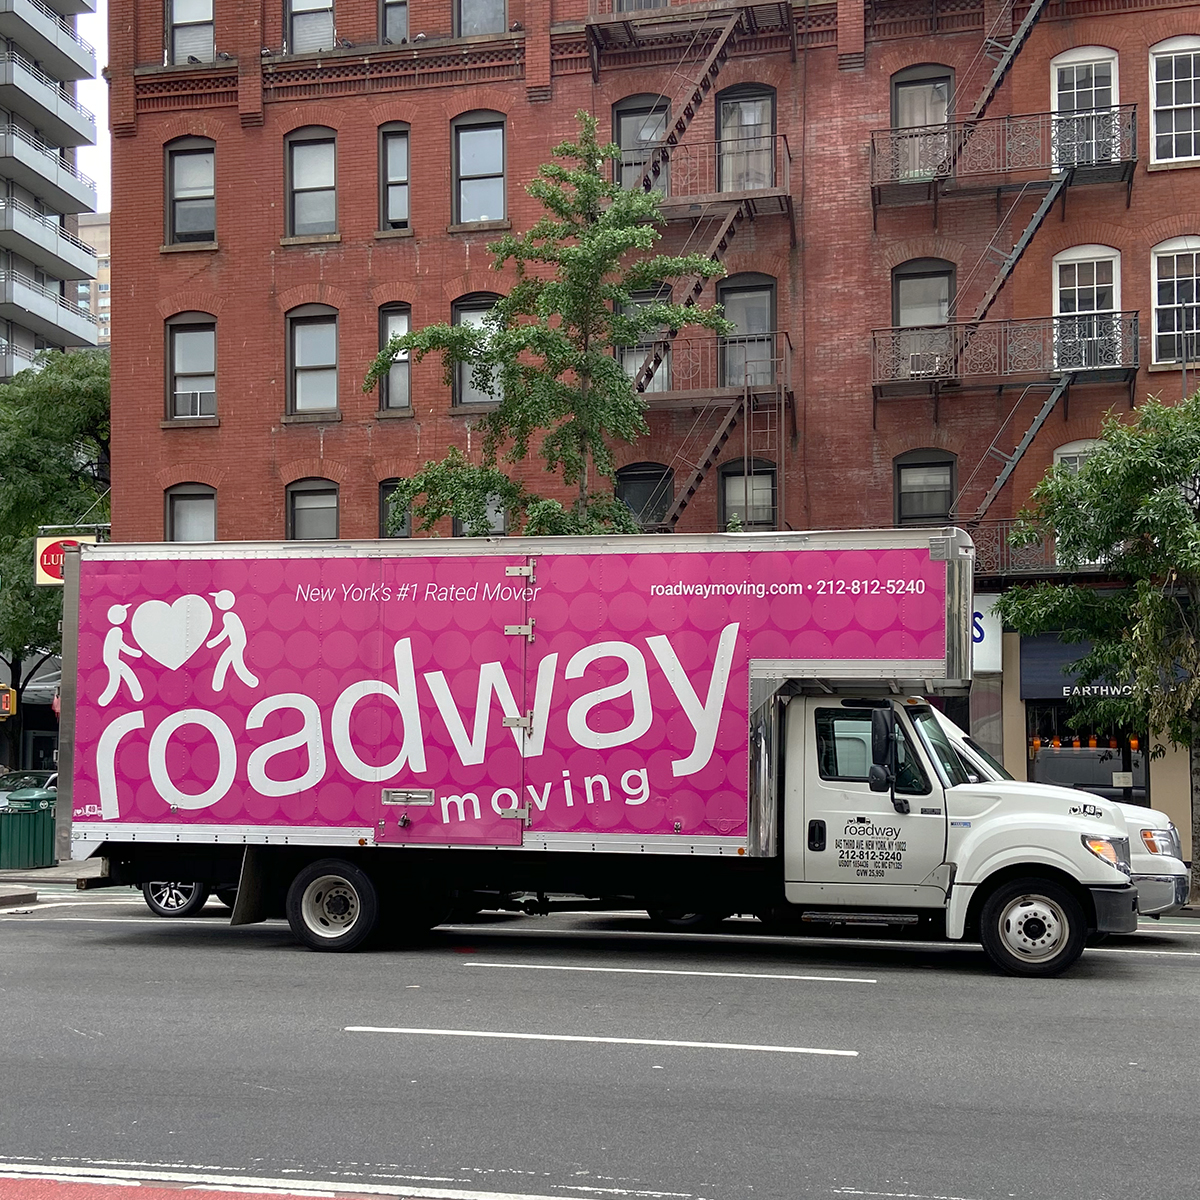 Moving Companies Hiring in NYC: How Do I Find Them?